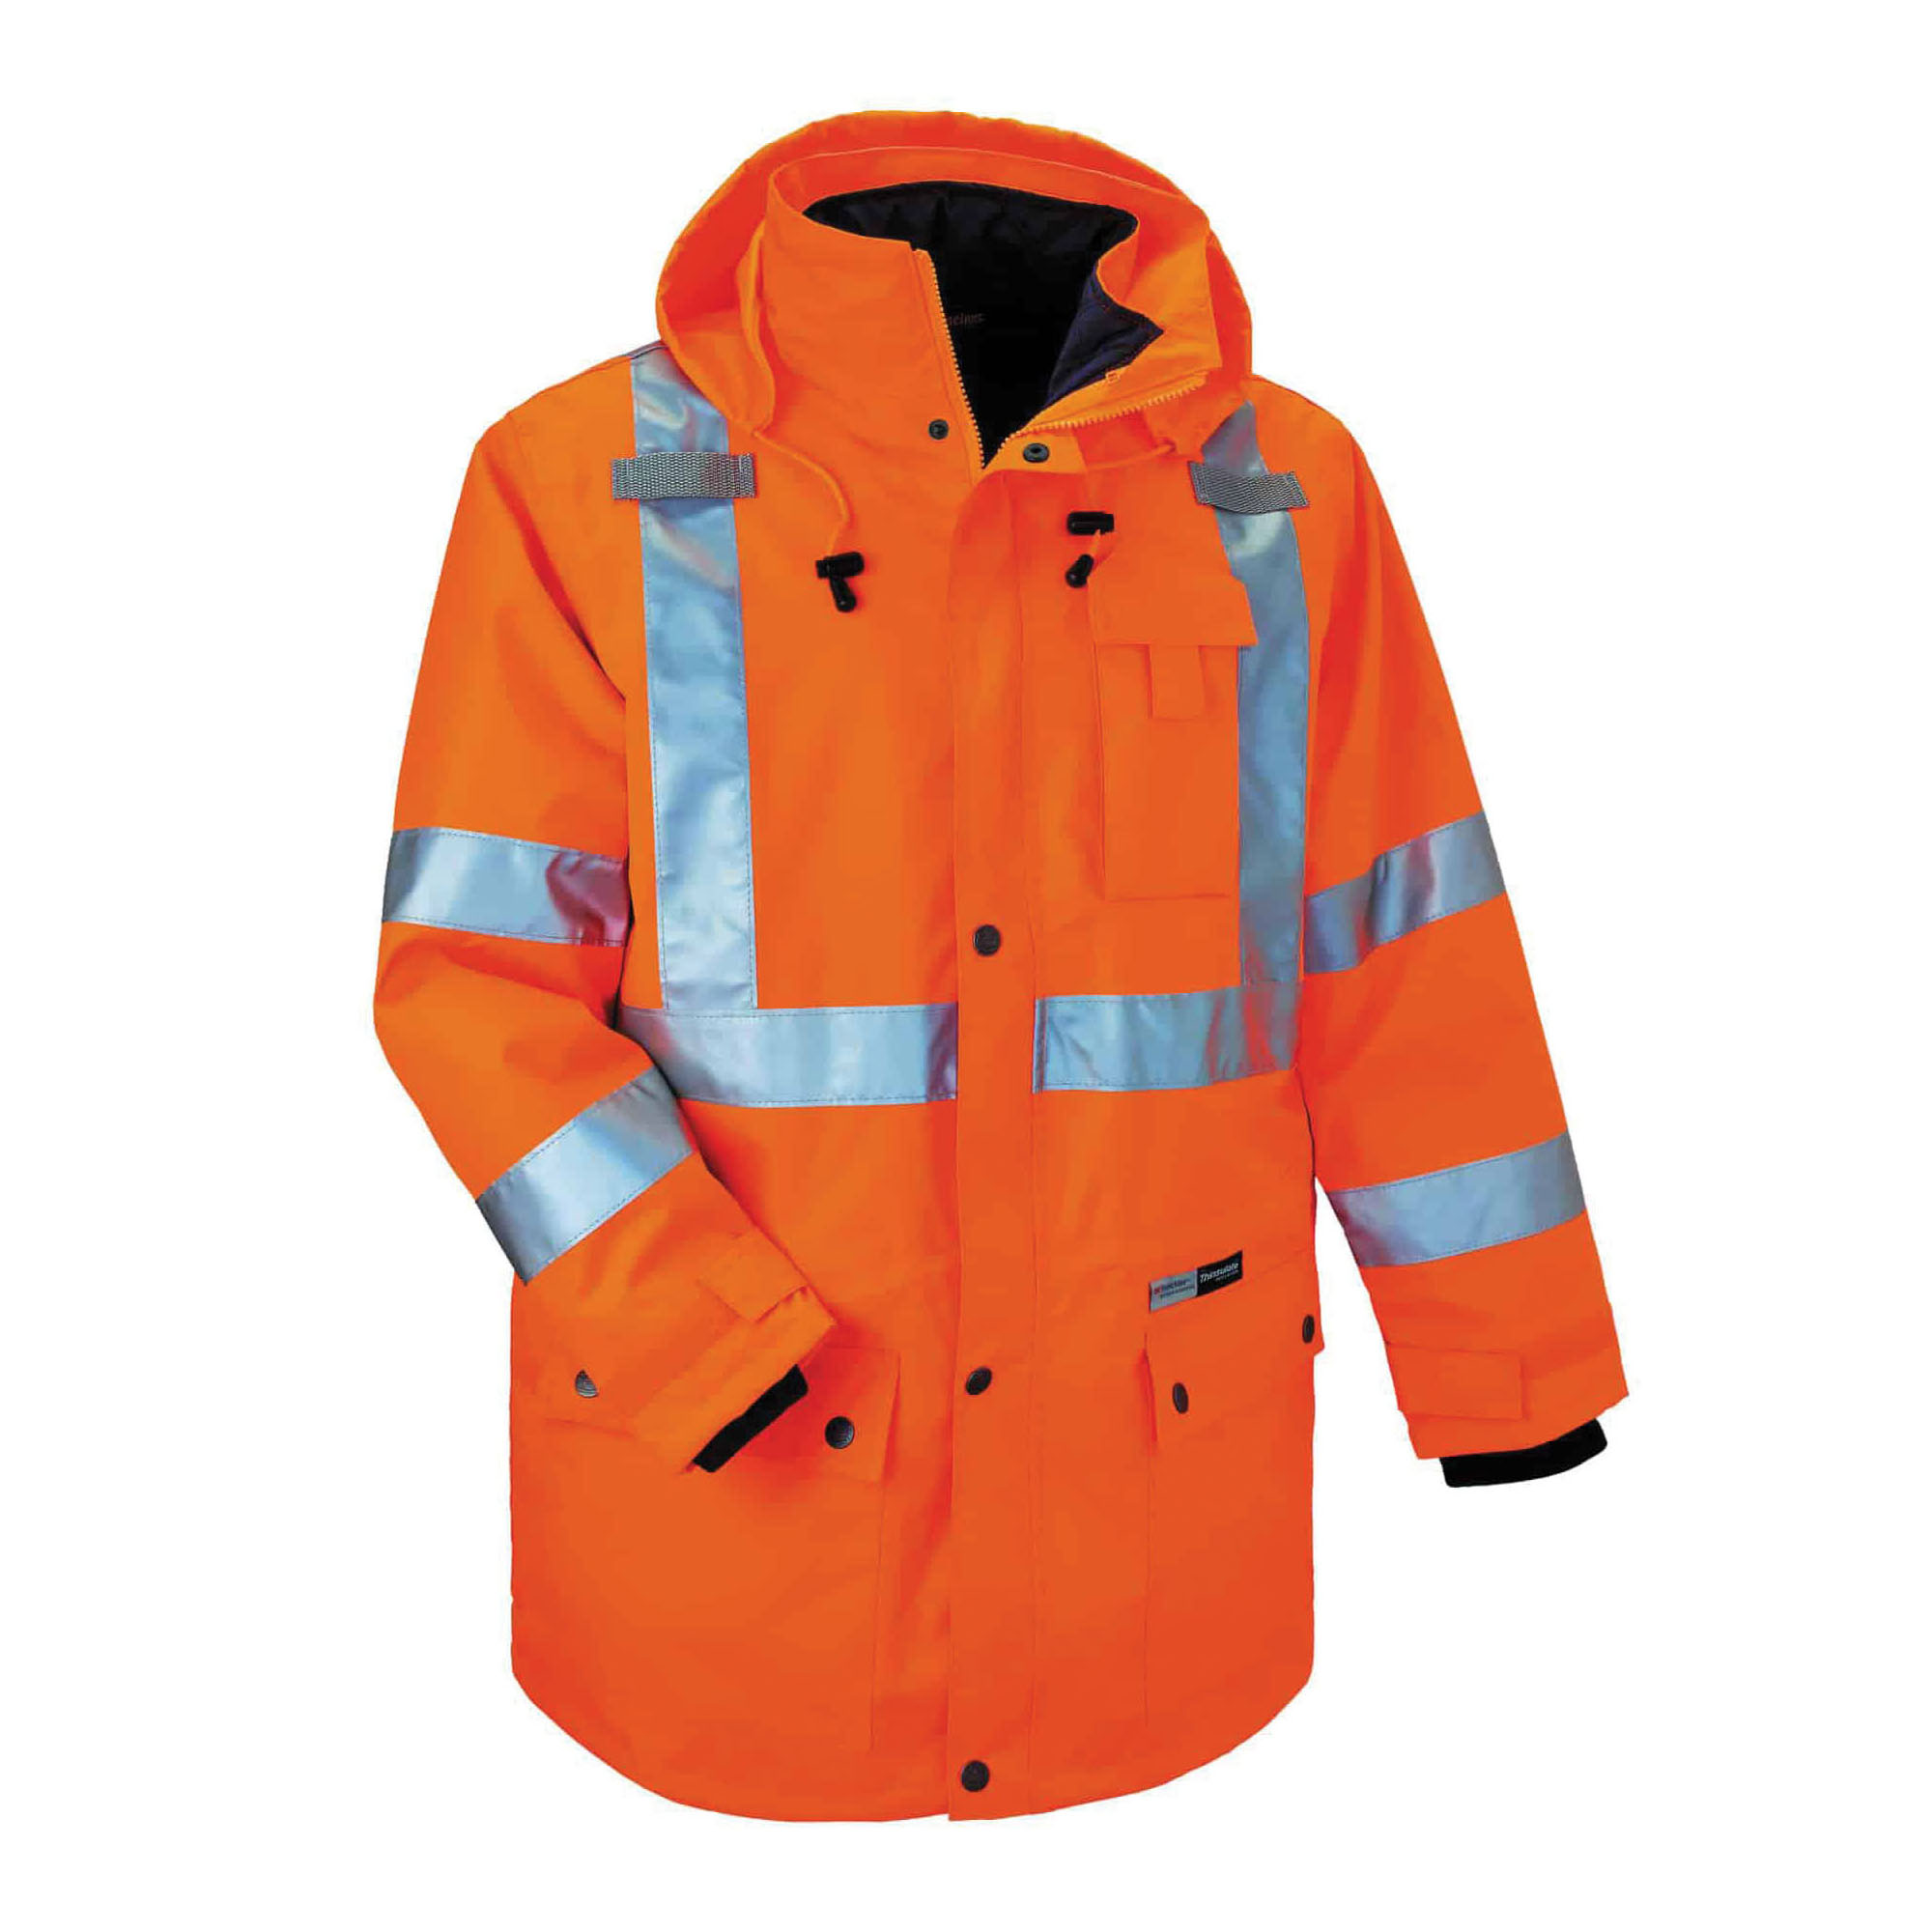 GloWear® 24372 8385 4-in-1 Hooded Insulated Jacket, Black/Hi-Viz Orange, 300D Polyester Oxford/Thinsulate®, 34 to 36 in Chest, Resists: Weather, Specifications Met: ANSI/ISEA 107-2010, Class 3 Type R